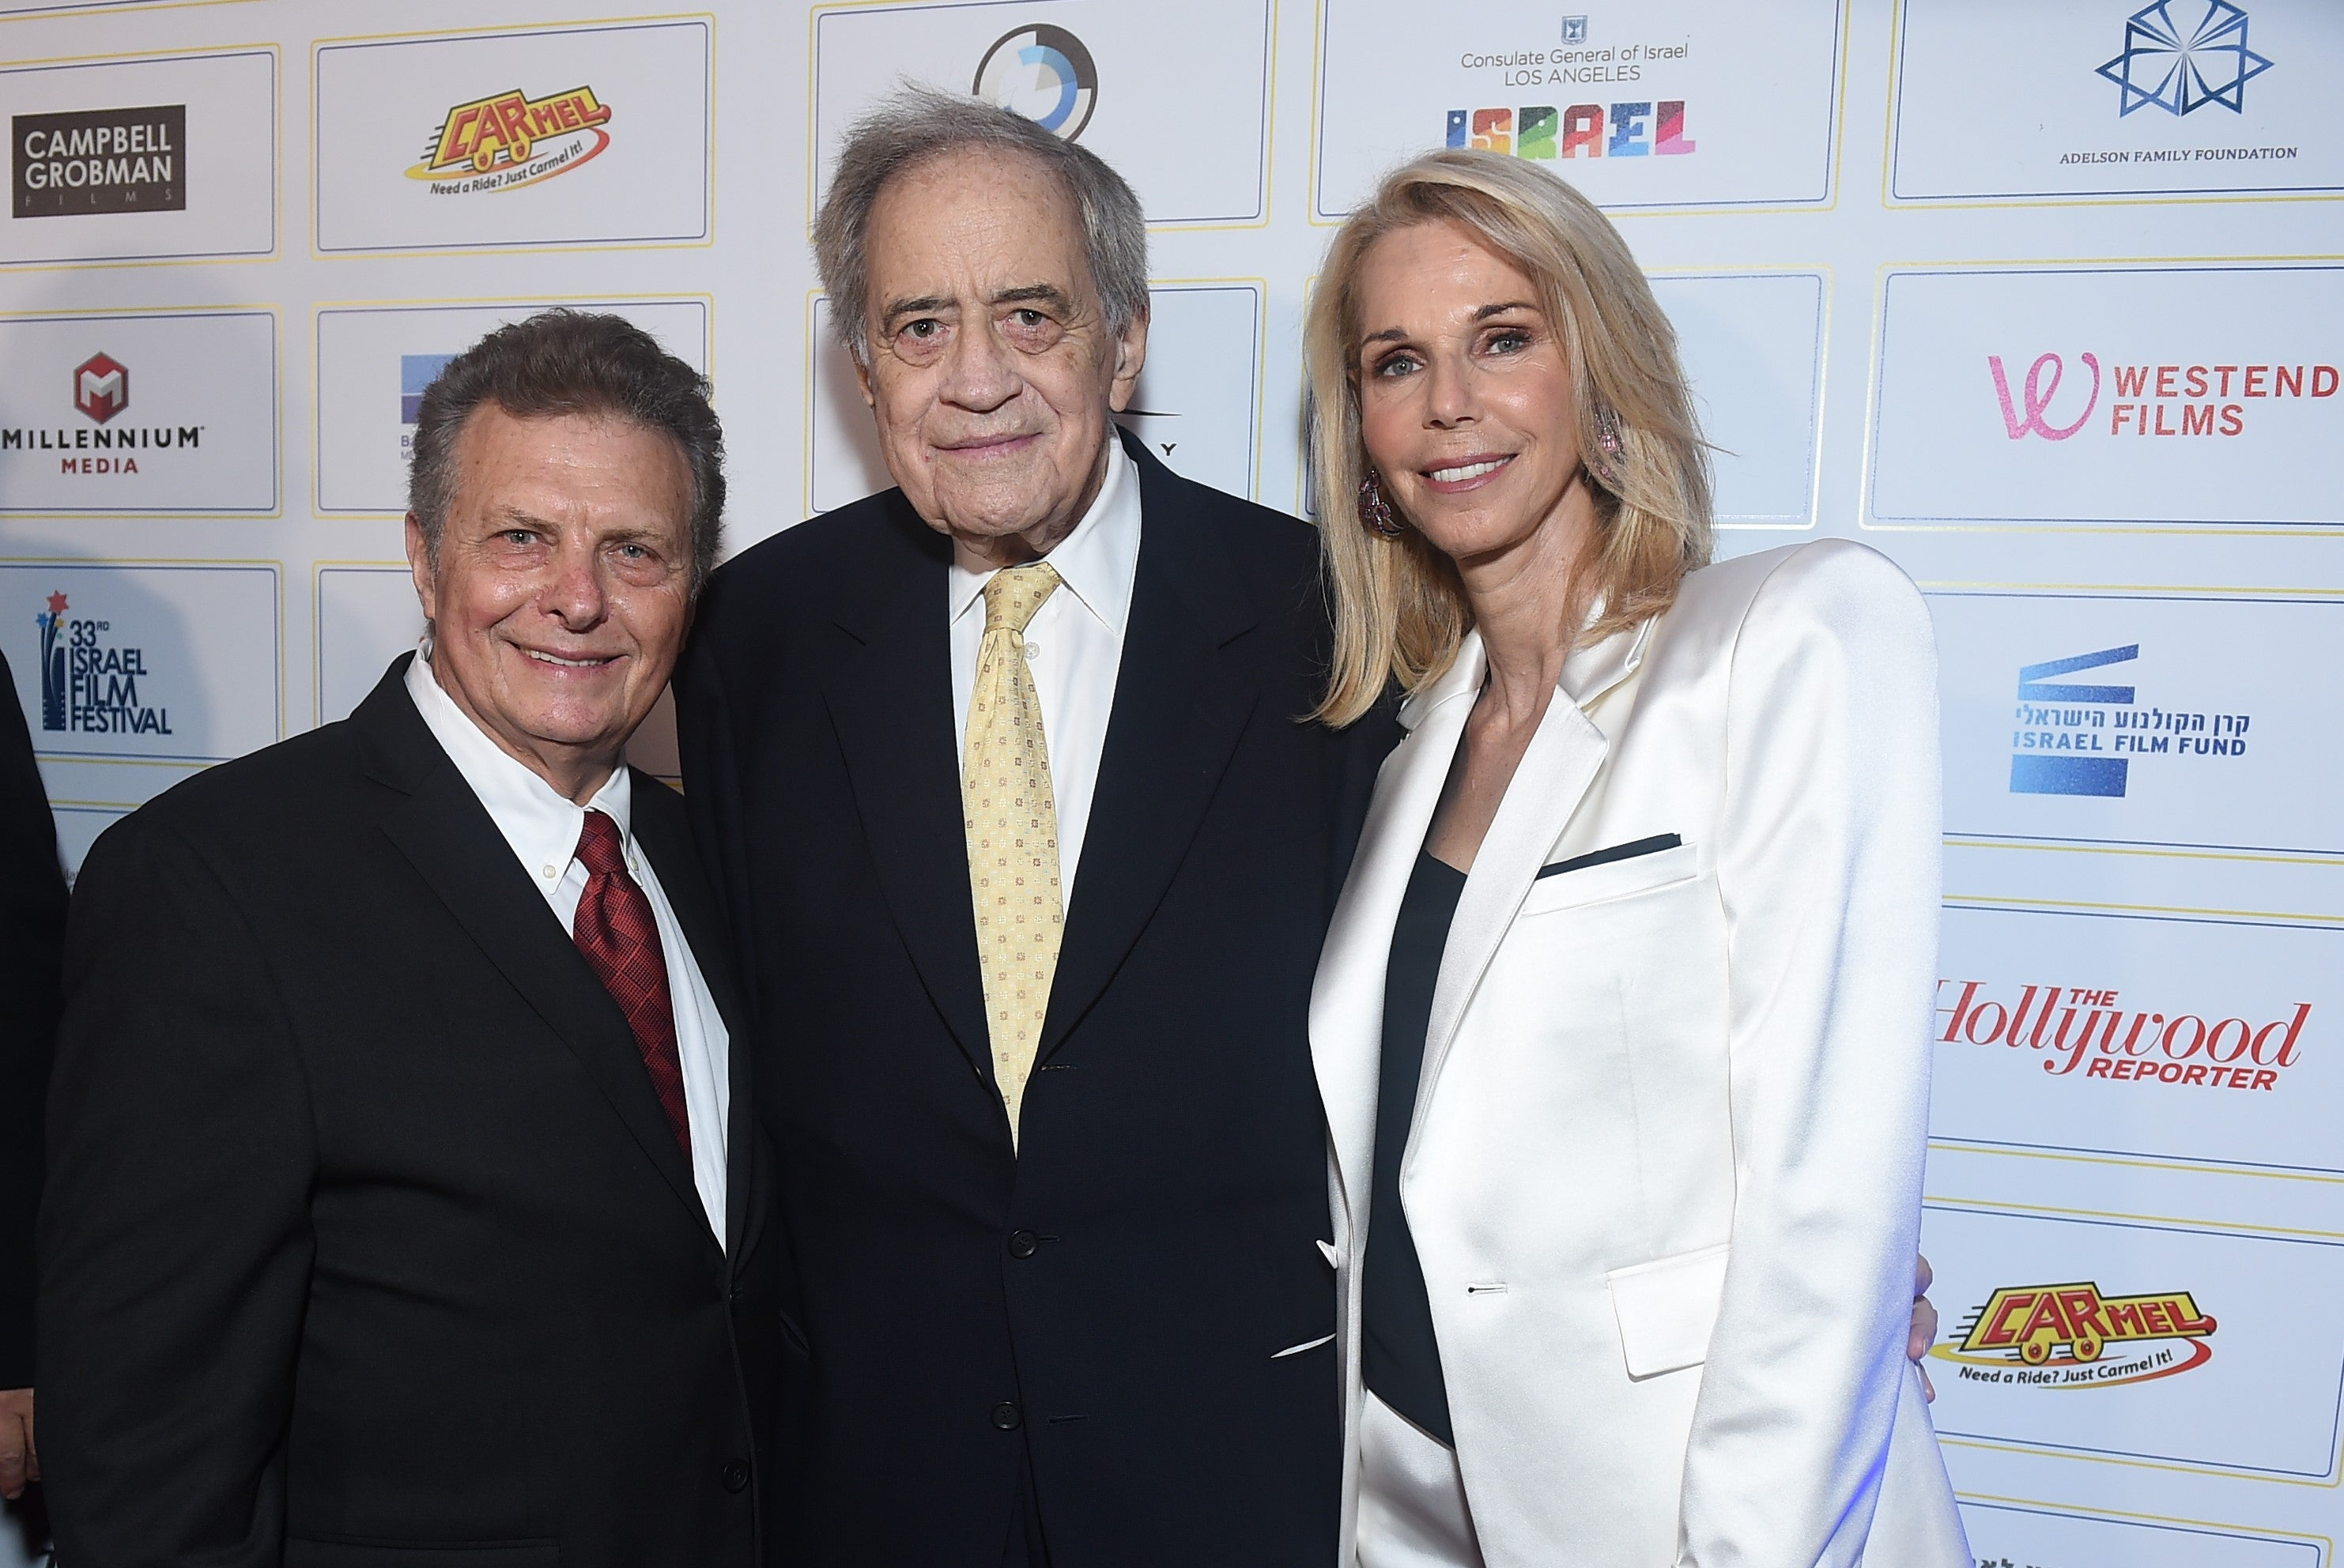 israel_film_festival_founder_exdirector_meir_fenigstein_2019_iff_lifetime_achievement_award_winner_arthur_cohn_2019_iff_achievement_in_film_award_producer Sharon Harel-Cohen